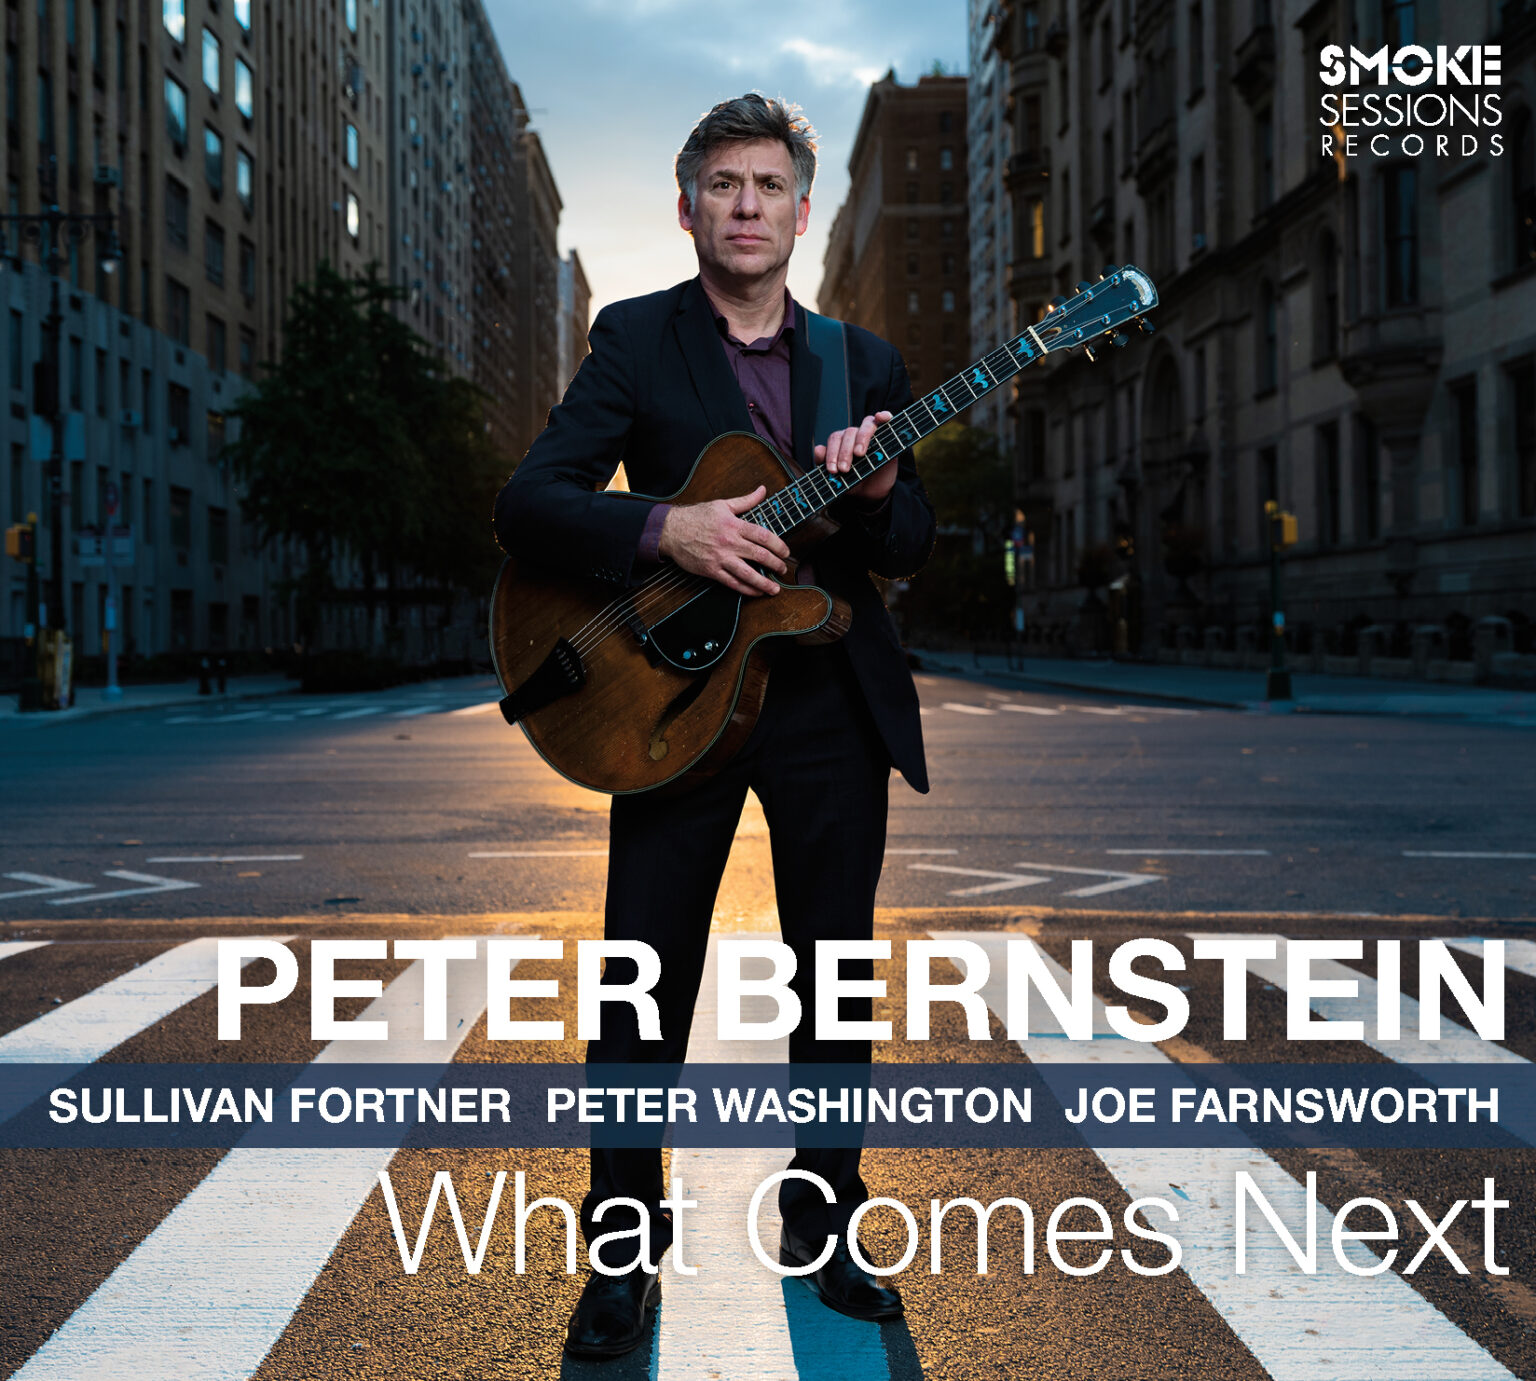 Ptere Bernstein - What Comes Next